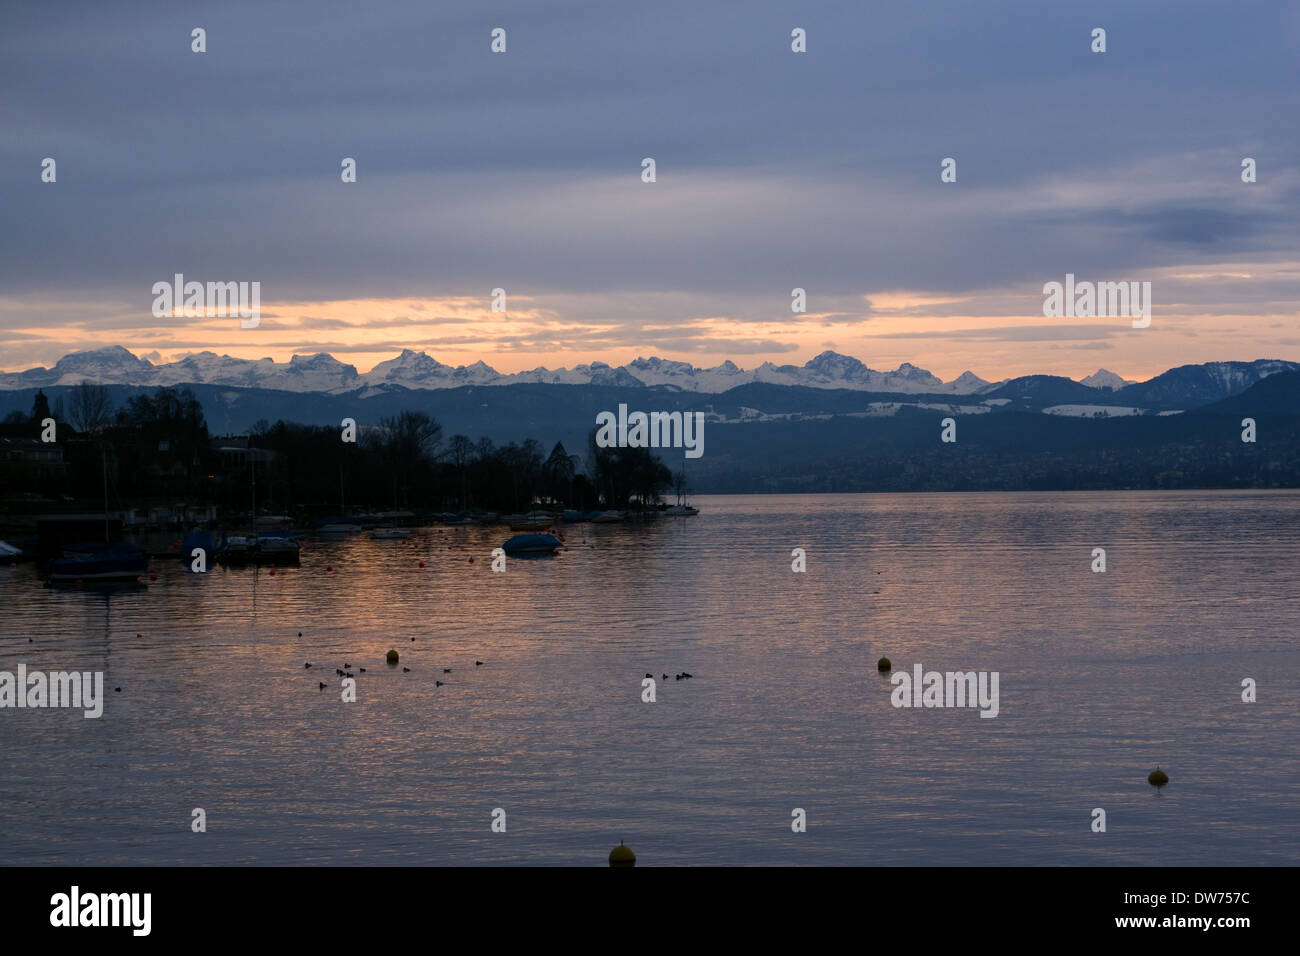 Sunset over Zurich, Switzerland -1 - Stock Image